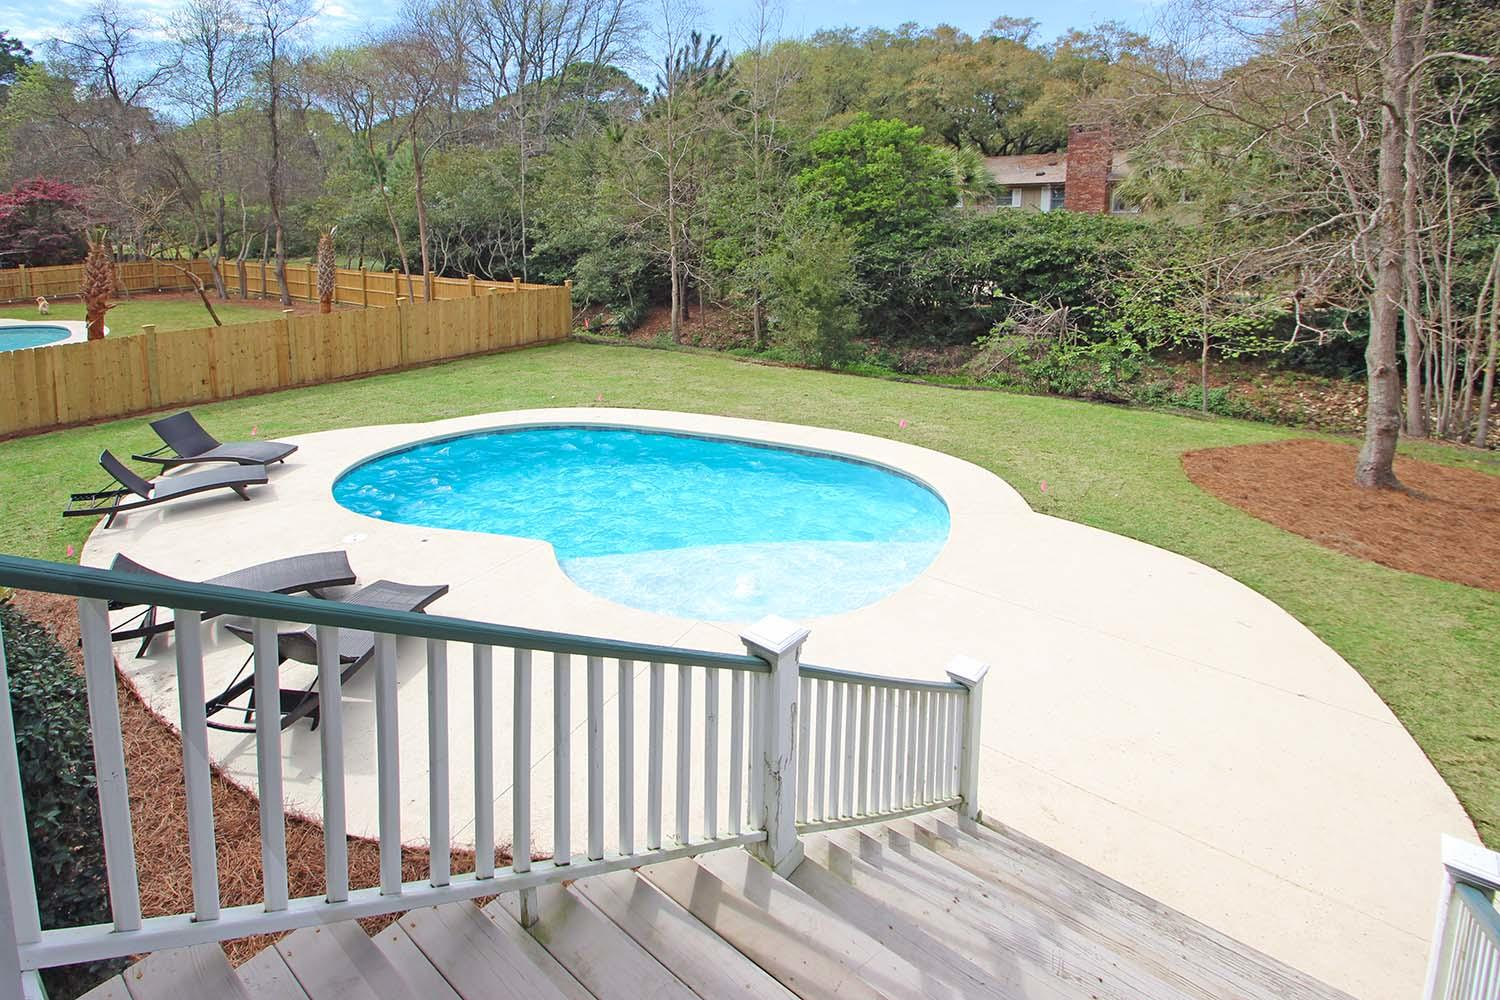 Pool area from deck